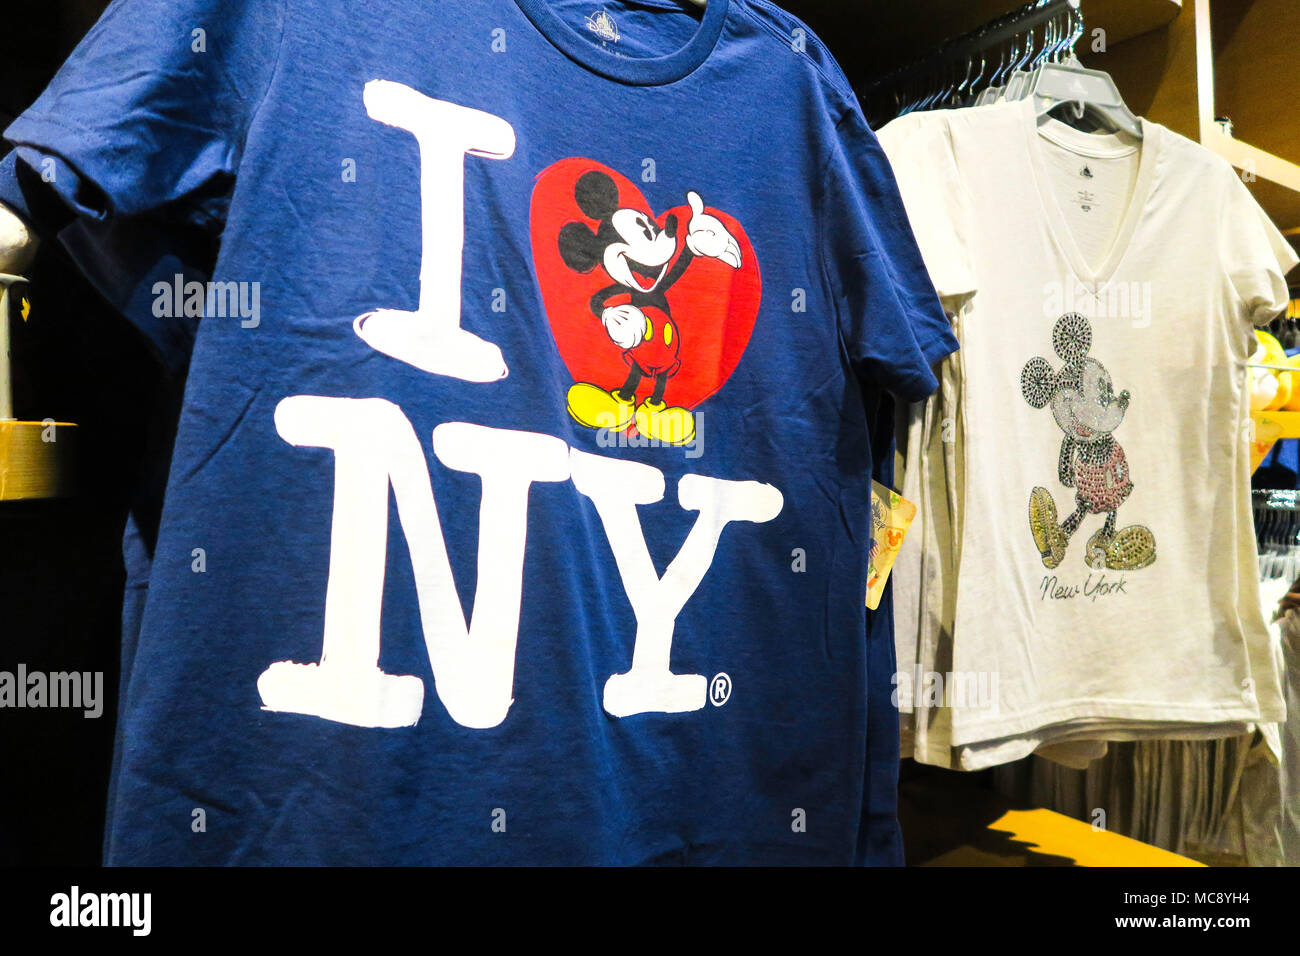 Disney Store T Shirts For Adults